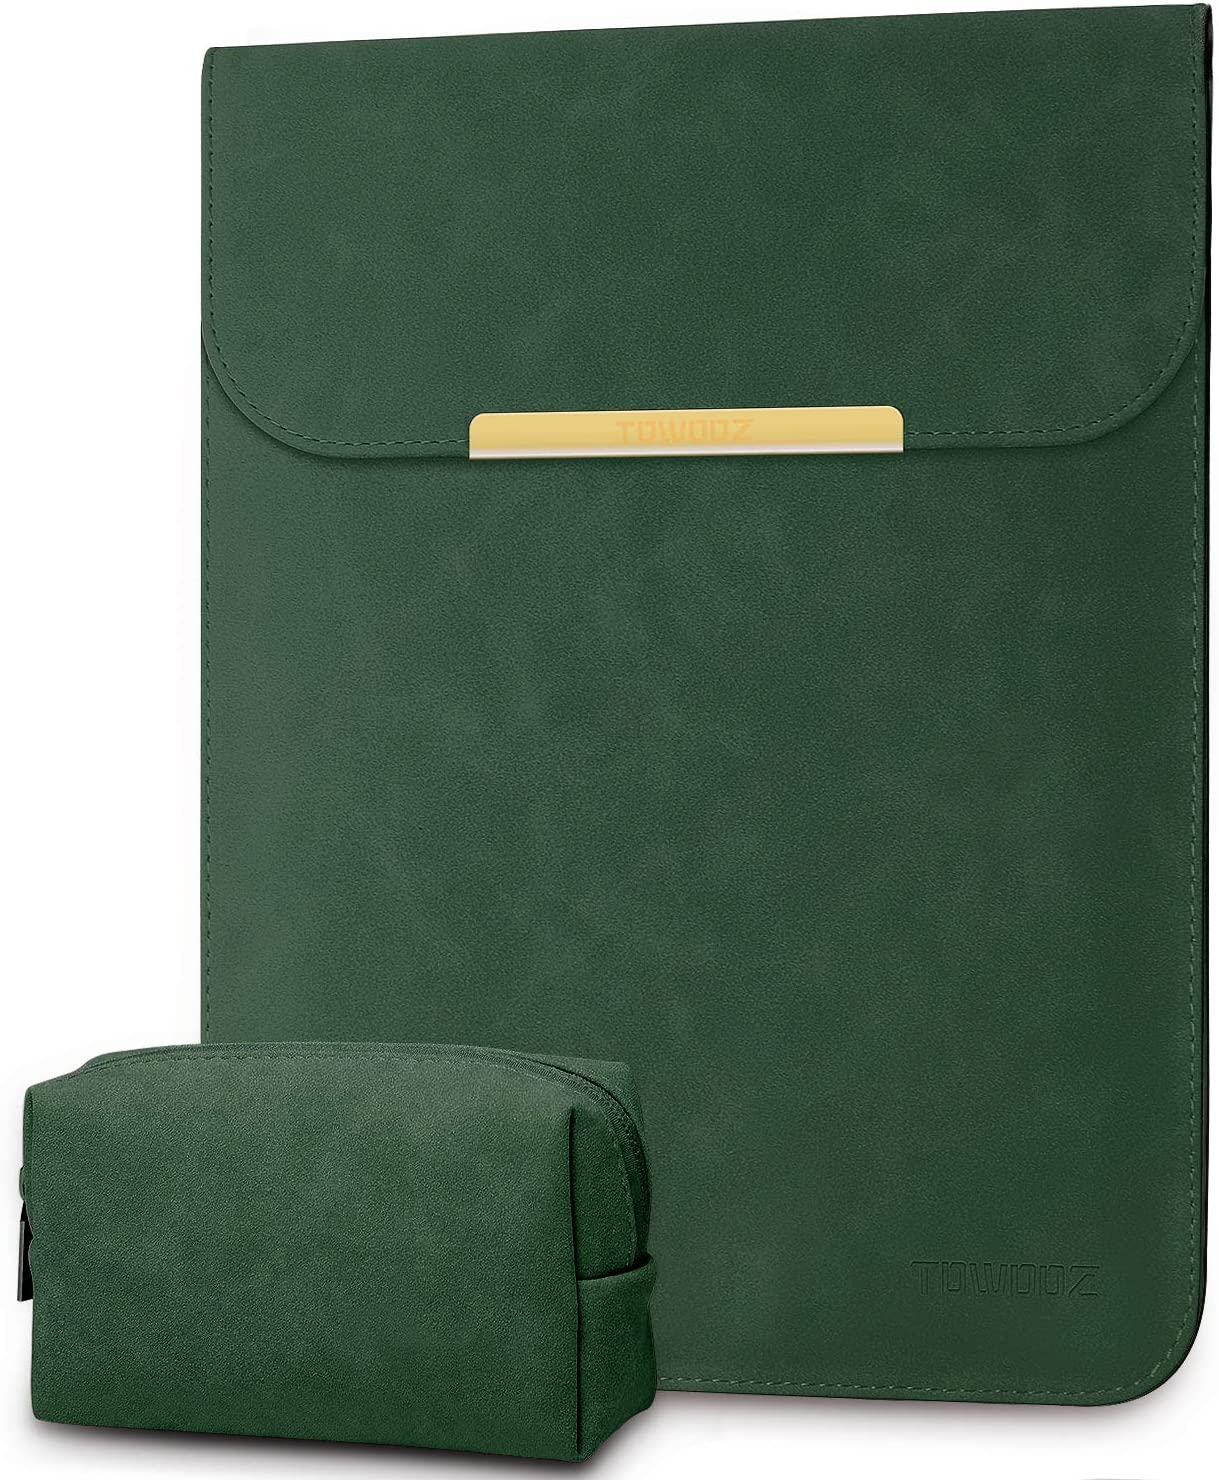 TOWOOZ Laptop Sleeve Case Compatible with 13-13.3 Inch MacBook Pro/MacBook Air 2016-2020 /iPad Pro 12.9 / Dell XPS 13/ Surface Pro X (Dark Green)